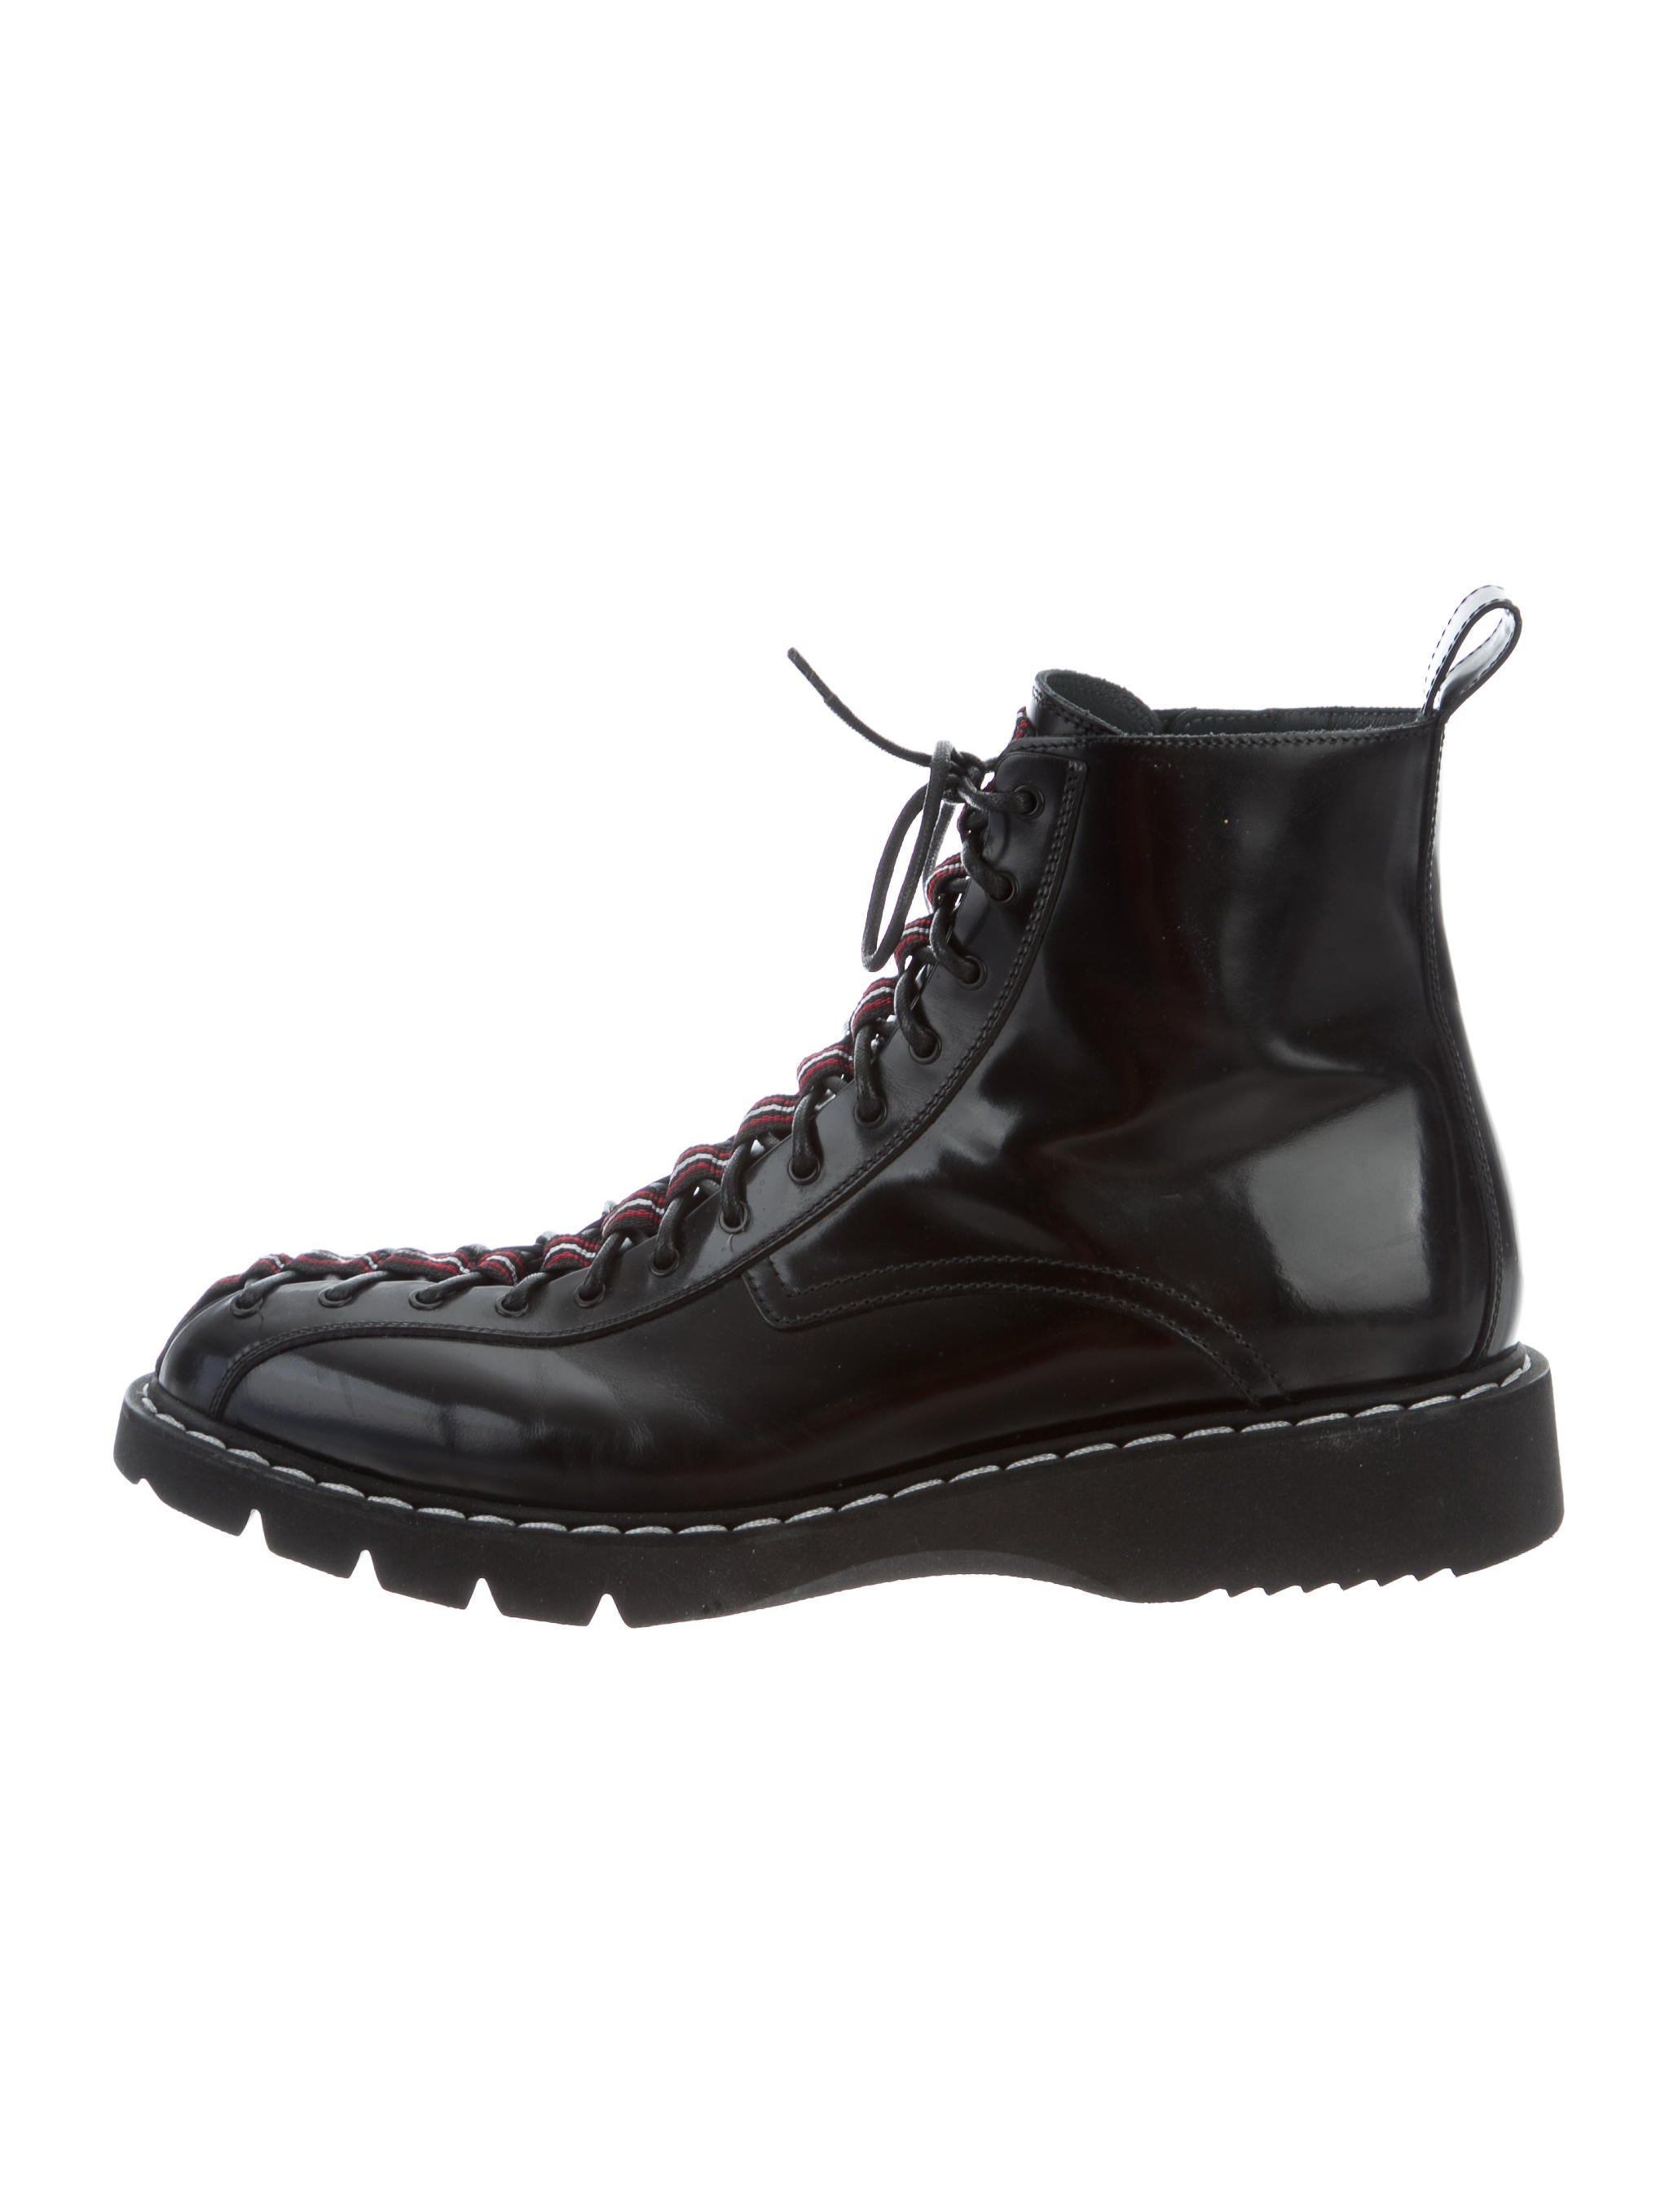 cfa8eaeebaf2 Dior Homme Leather Combat Boots - Shoes - HMM23275   The RealReal